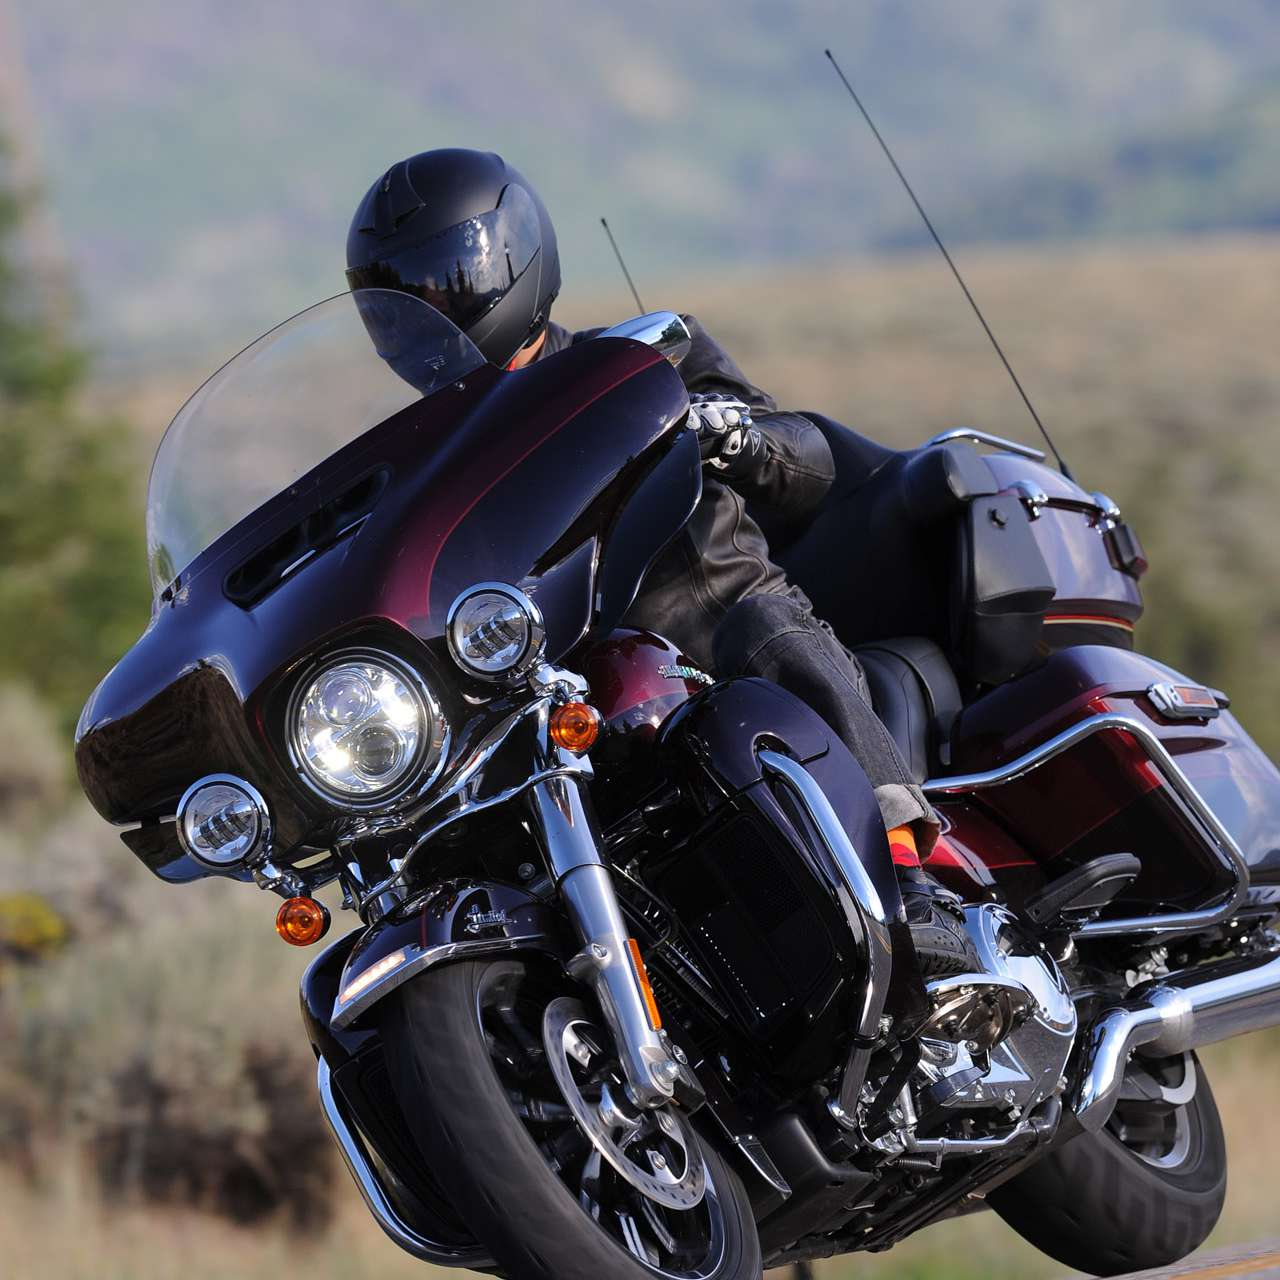 Liquid Cooled 2014 Harley-Davidsons: 6 Things to Know on